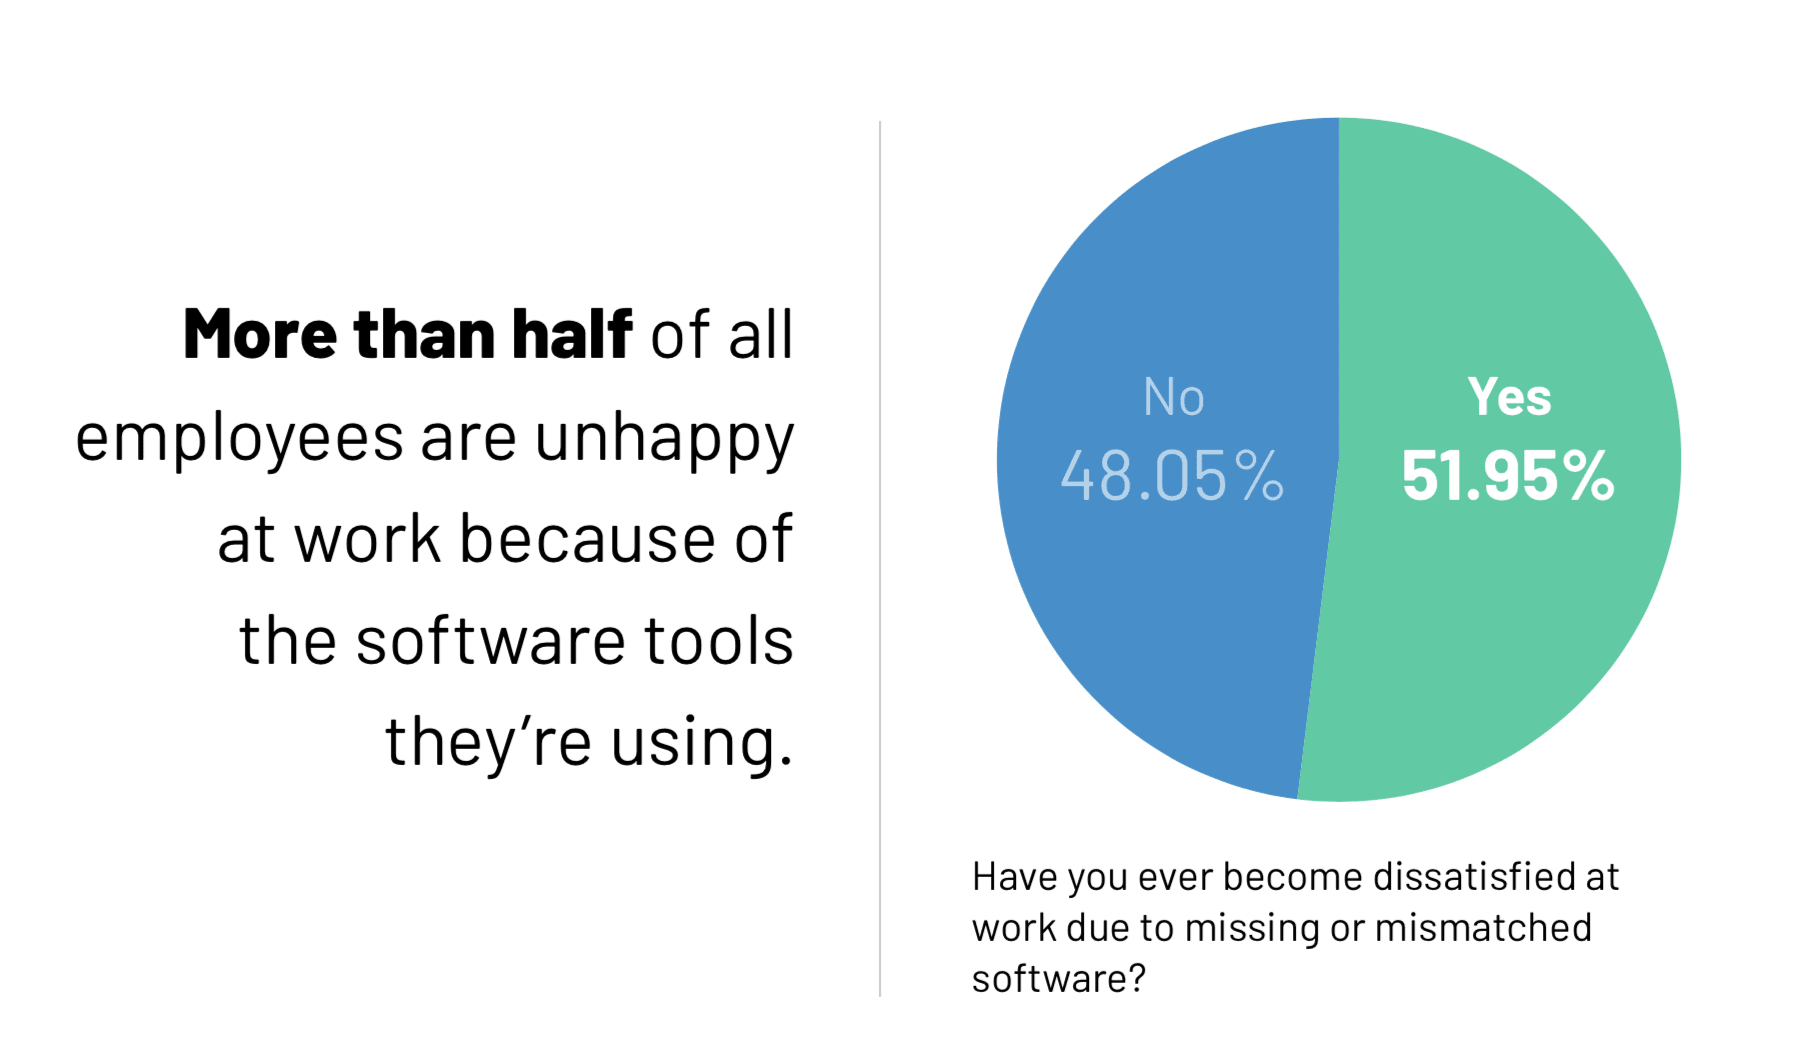 More than half of all employees are unhappy at work because of the software tools they're using.